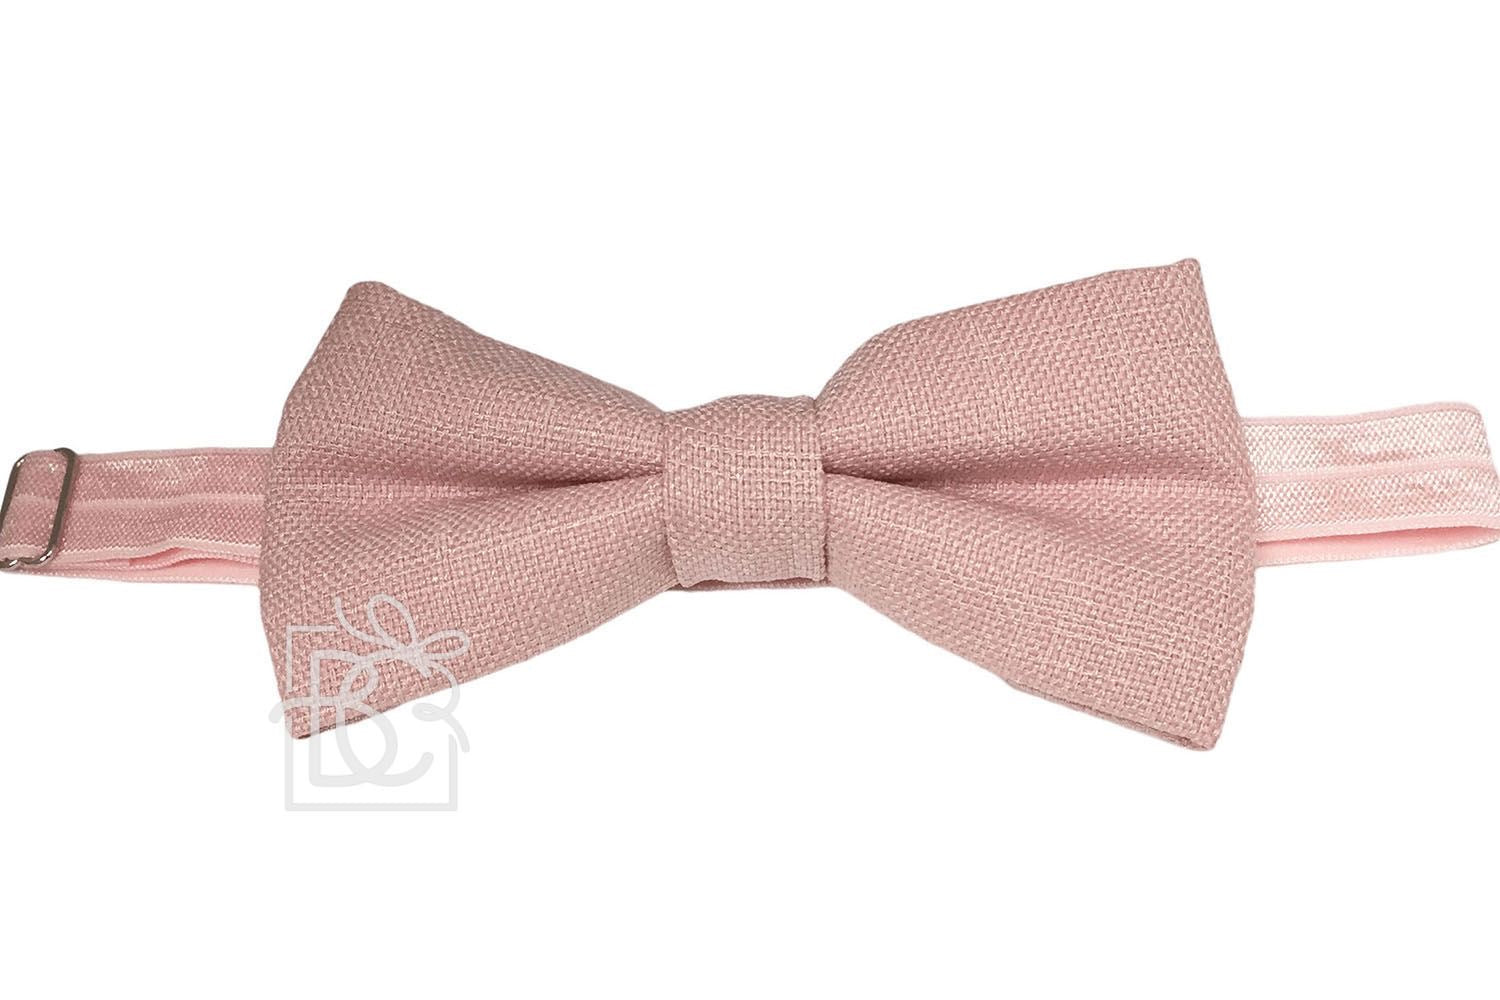 Beyond Creations Large Linen Bow Tie